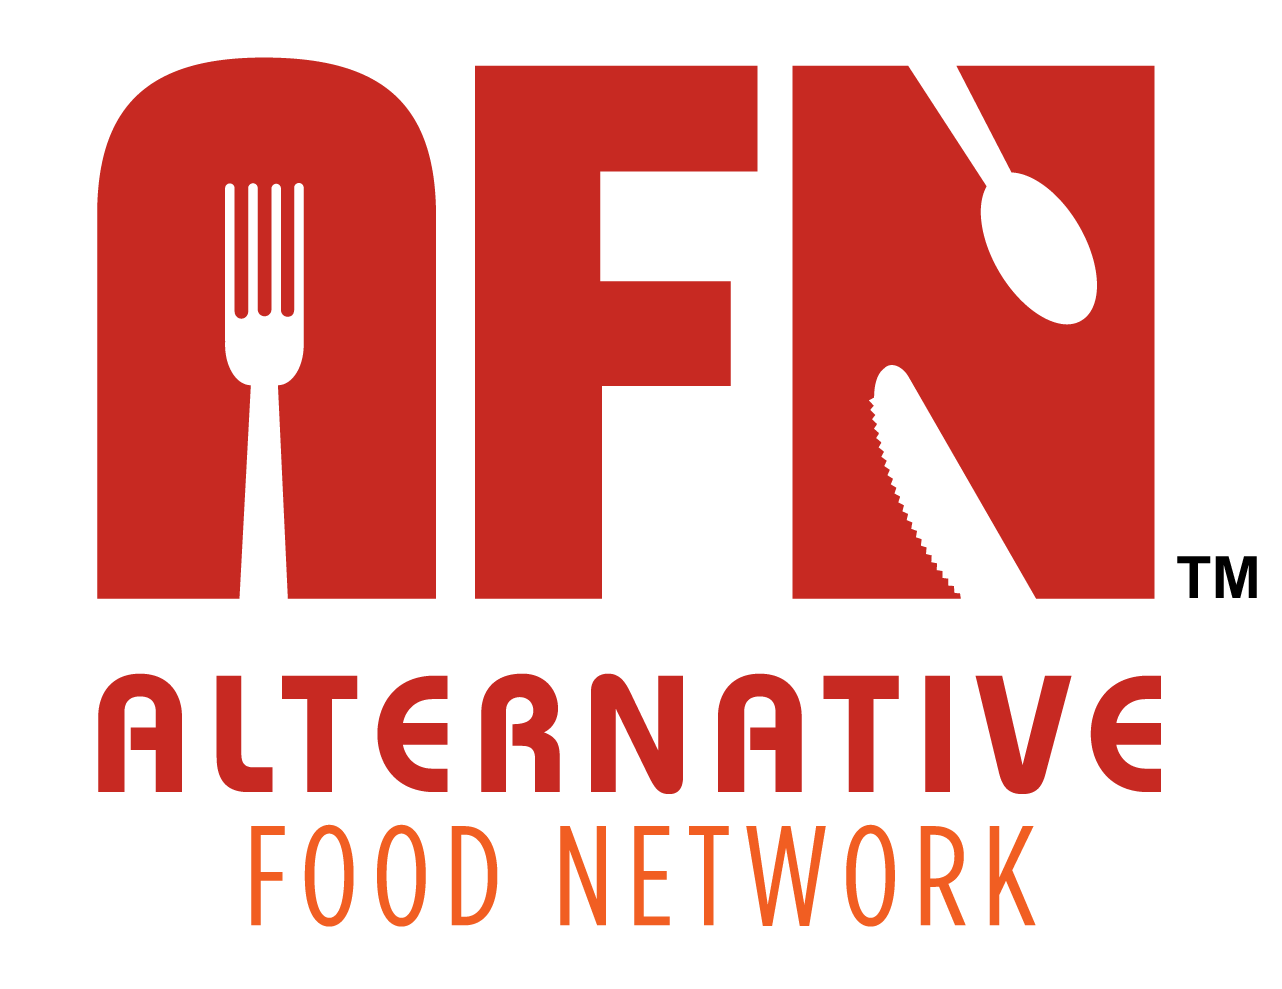 AFN – Alternative Food Network